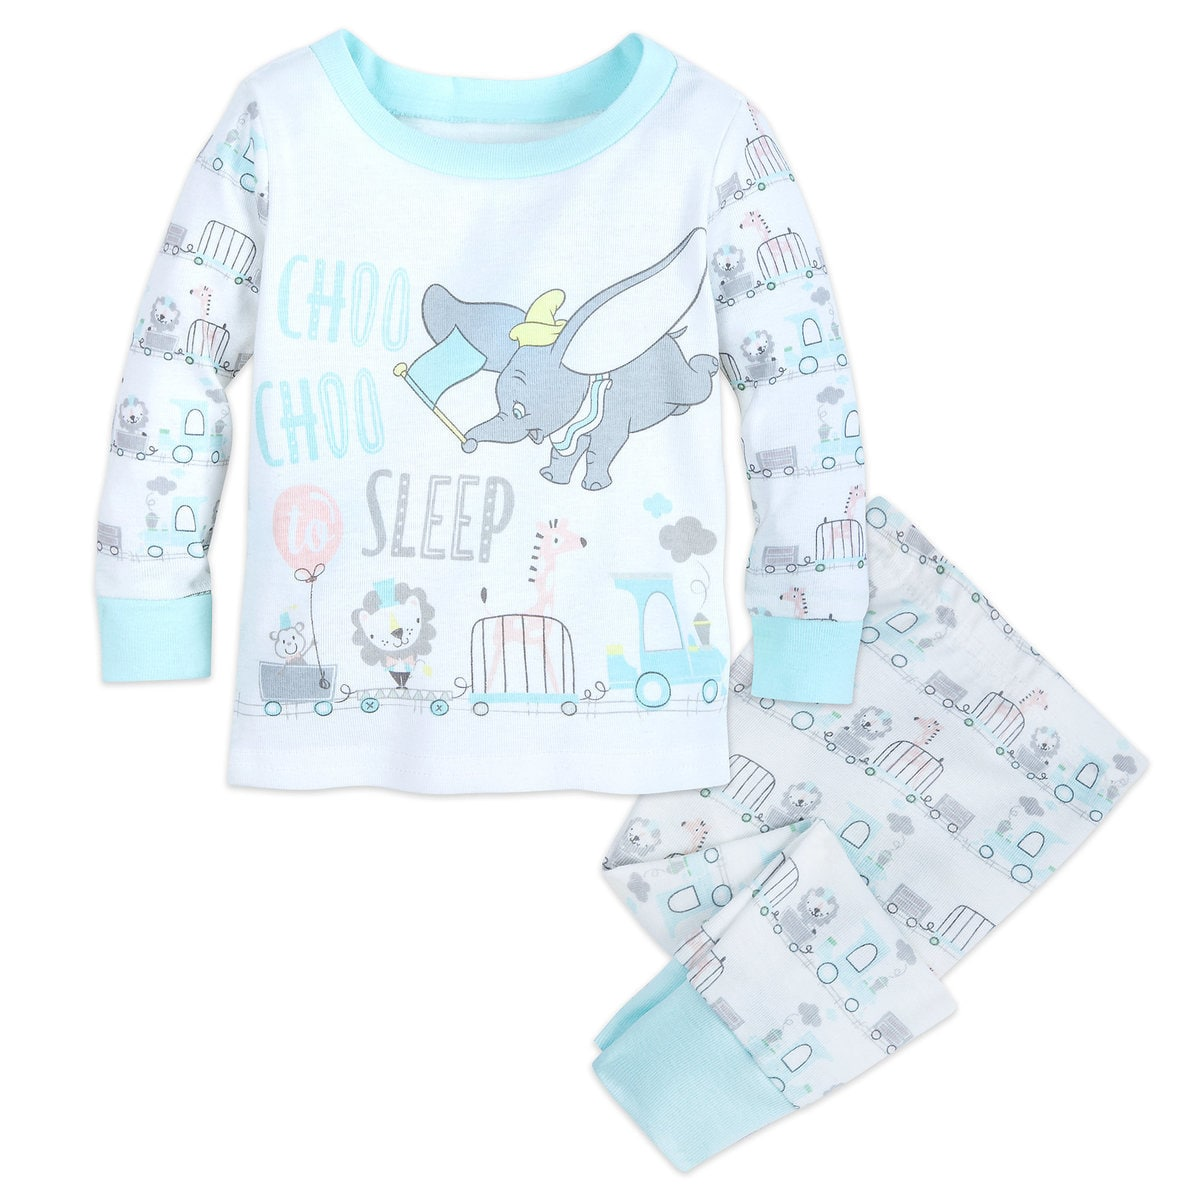 Top 25 Disney Gift Ideas for Babies featured by top US Disney blogger, Marcie and the Mouse: These Dumbo pajamas are perfect for babies